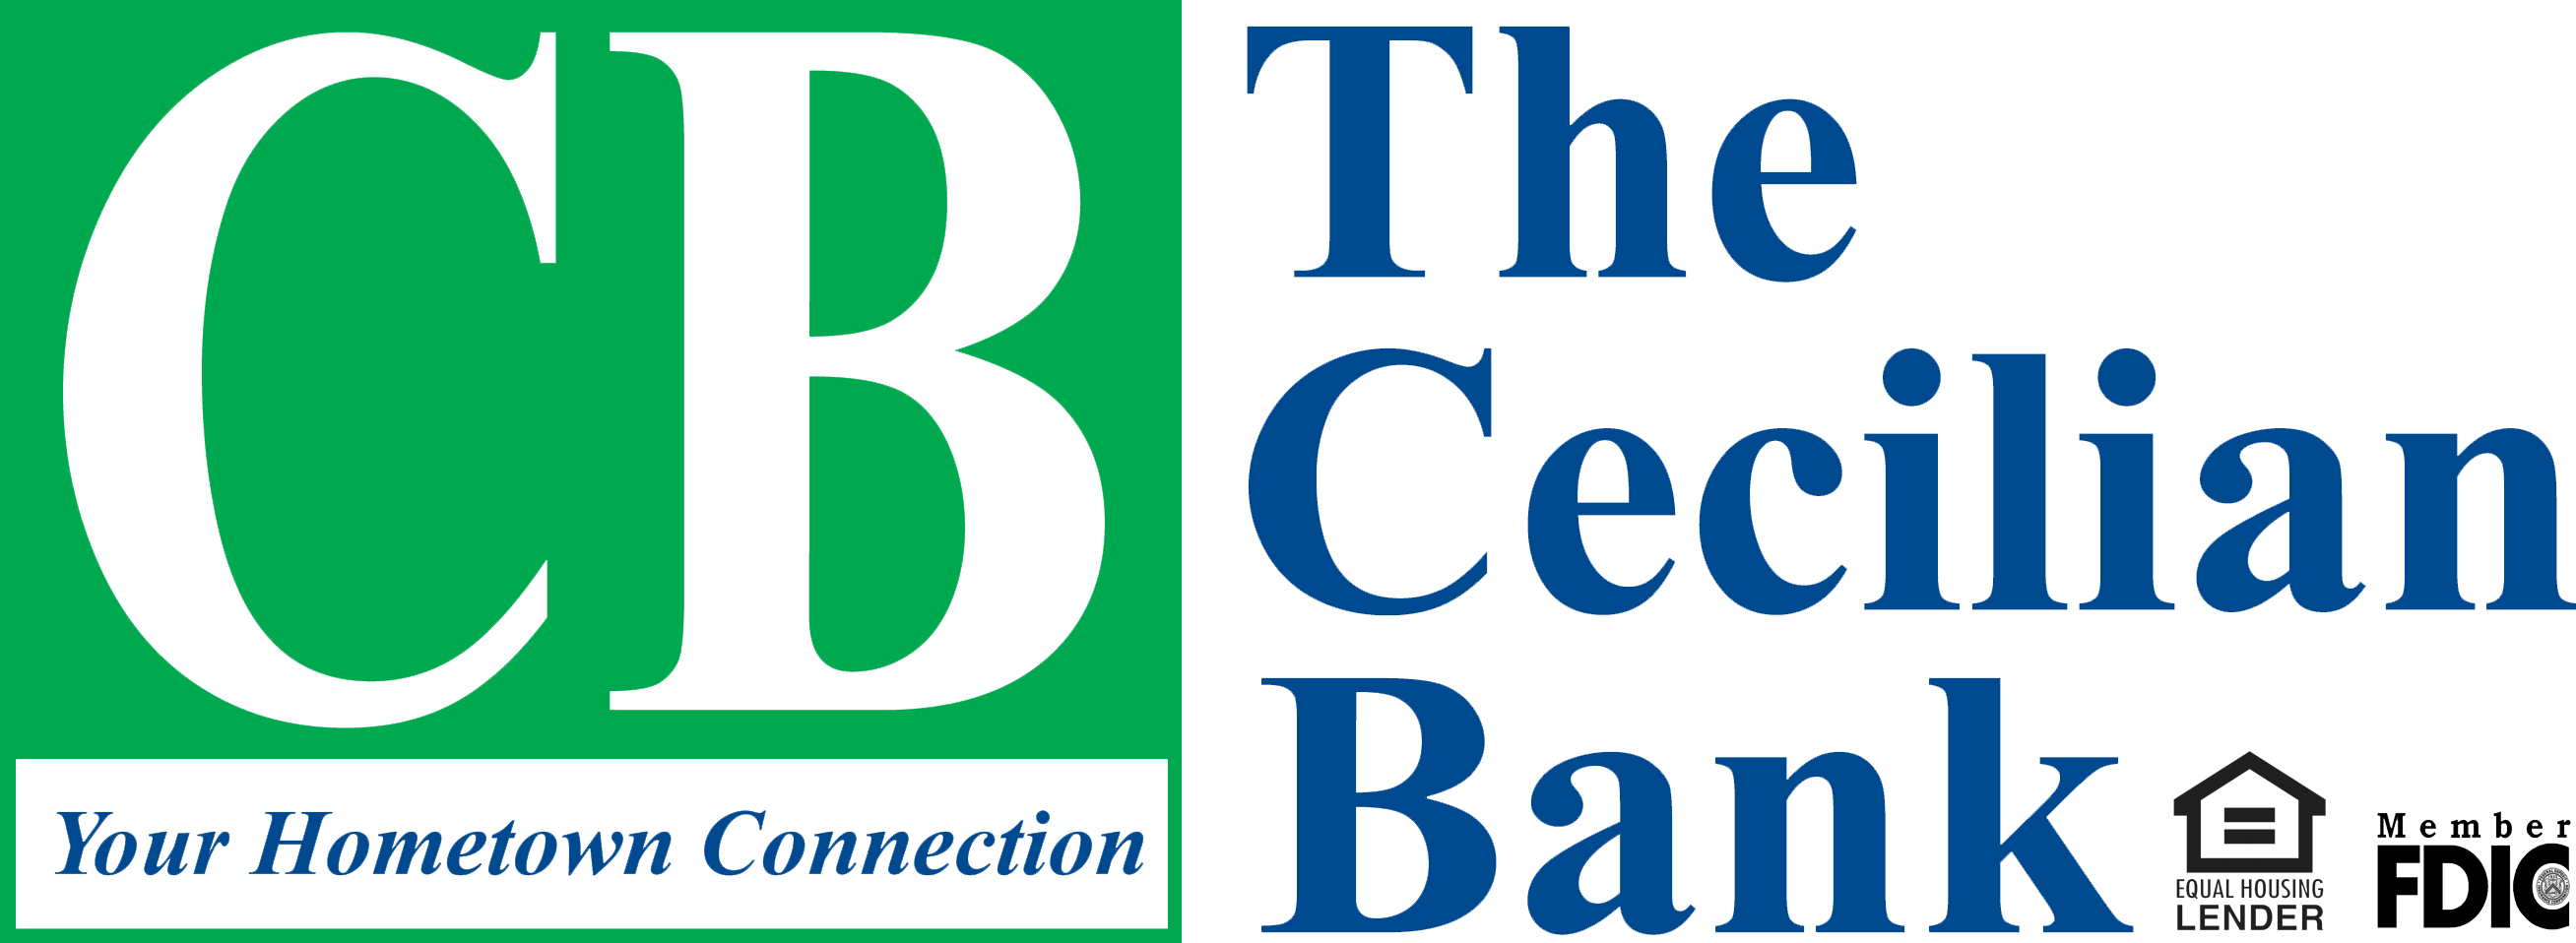 Cecilian bank with ehl and fdic logo clear background